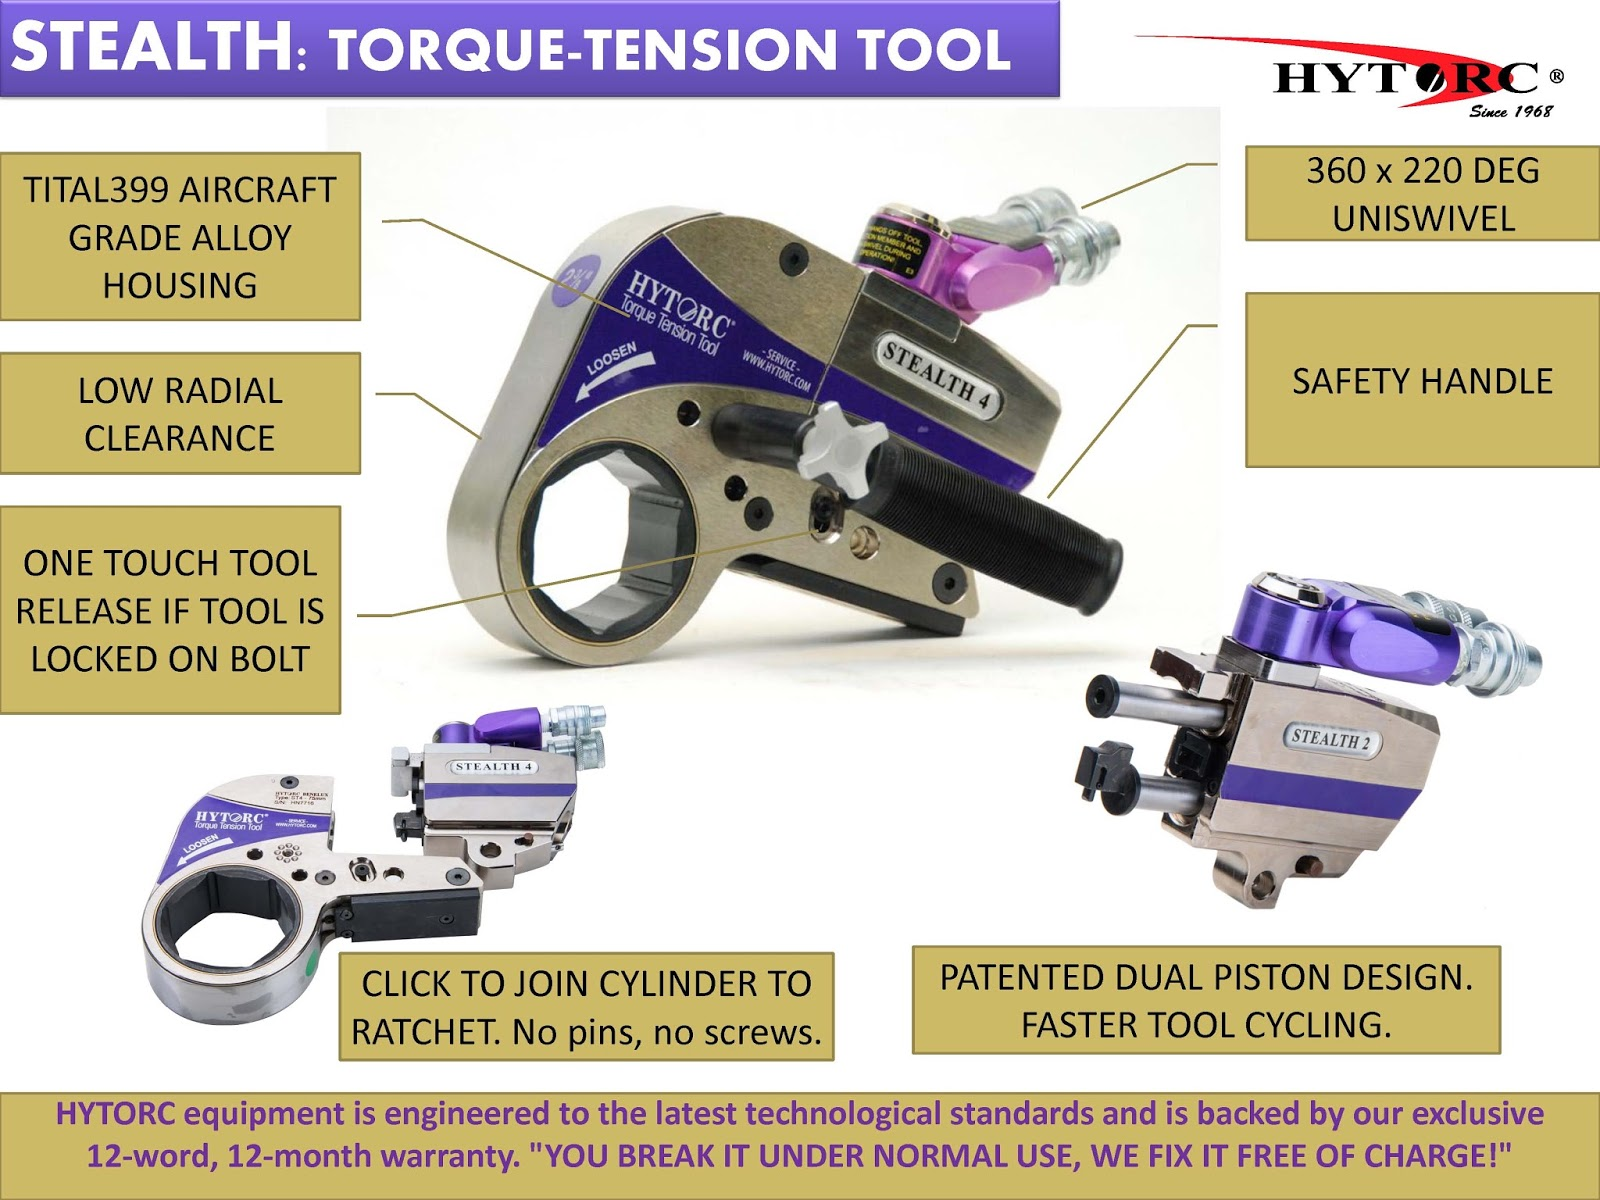 Hytorc Stealth 2 Manual